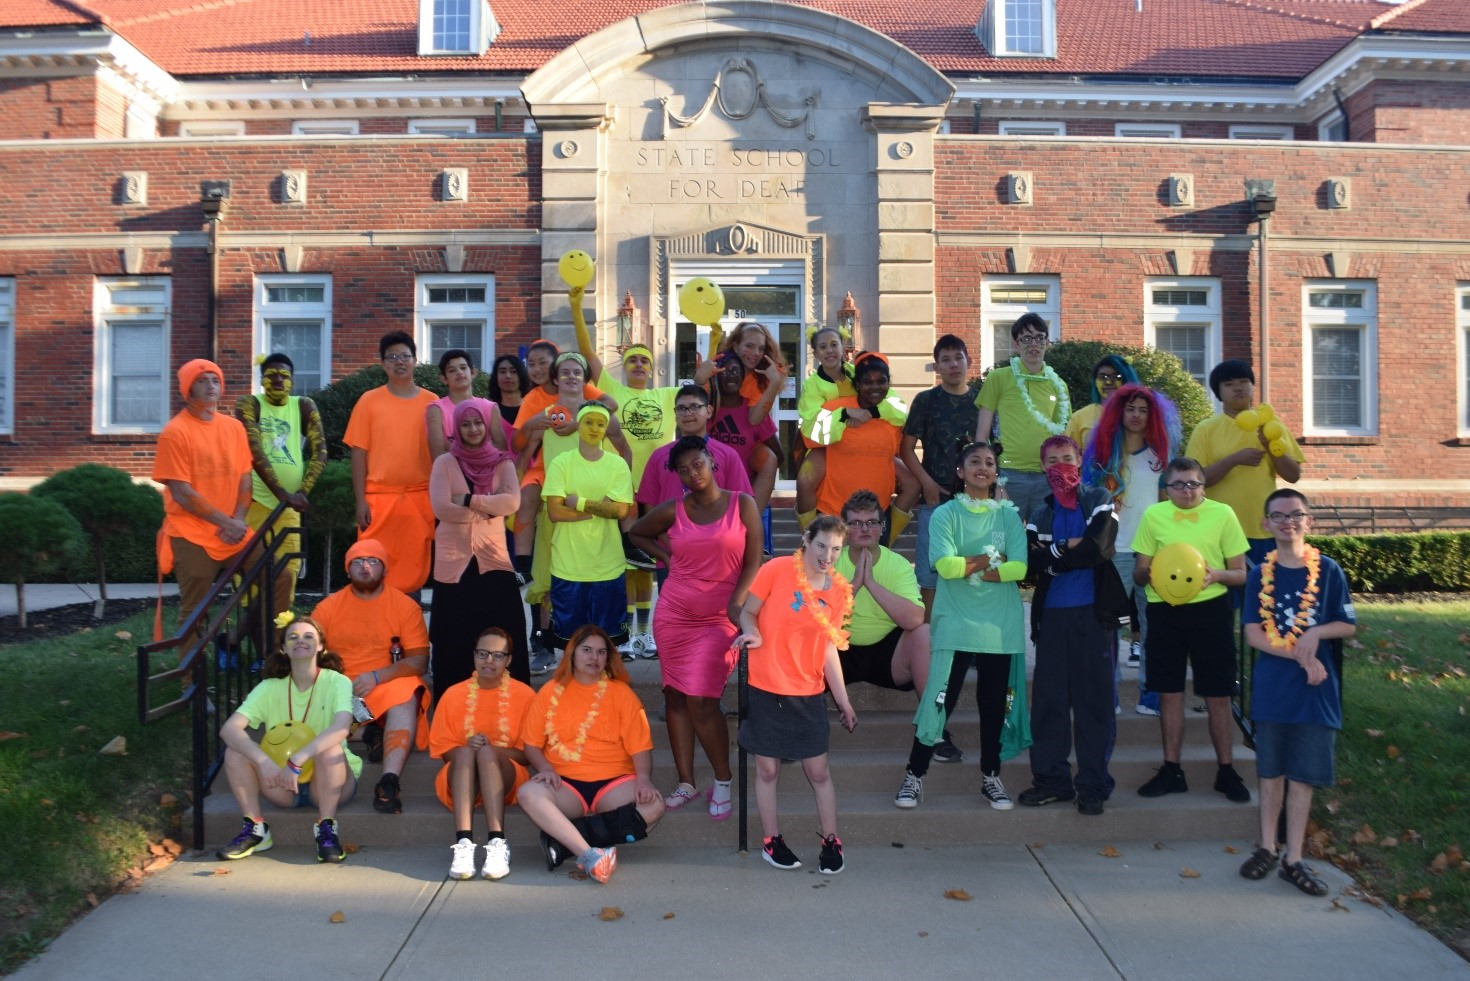 Students showing their homecoming spirit - Sept 18, 2019 - the Neon Day in the front of Roth building.